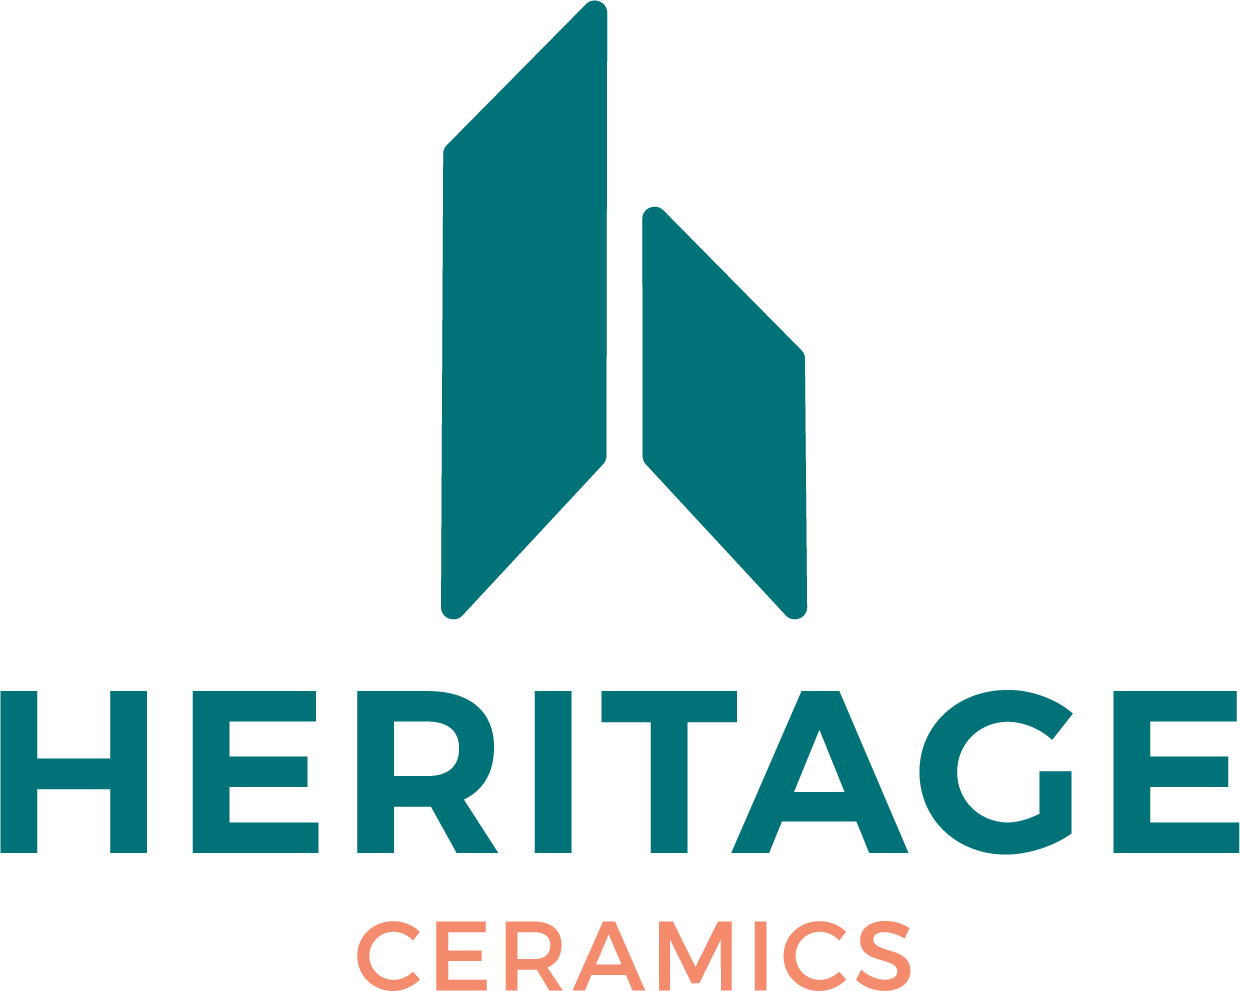 Heritage Ceramics Pte Ltd